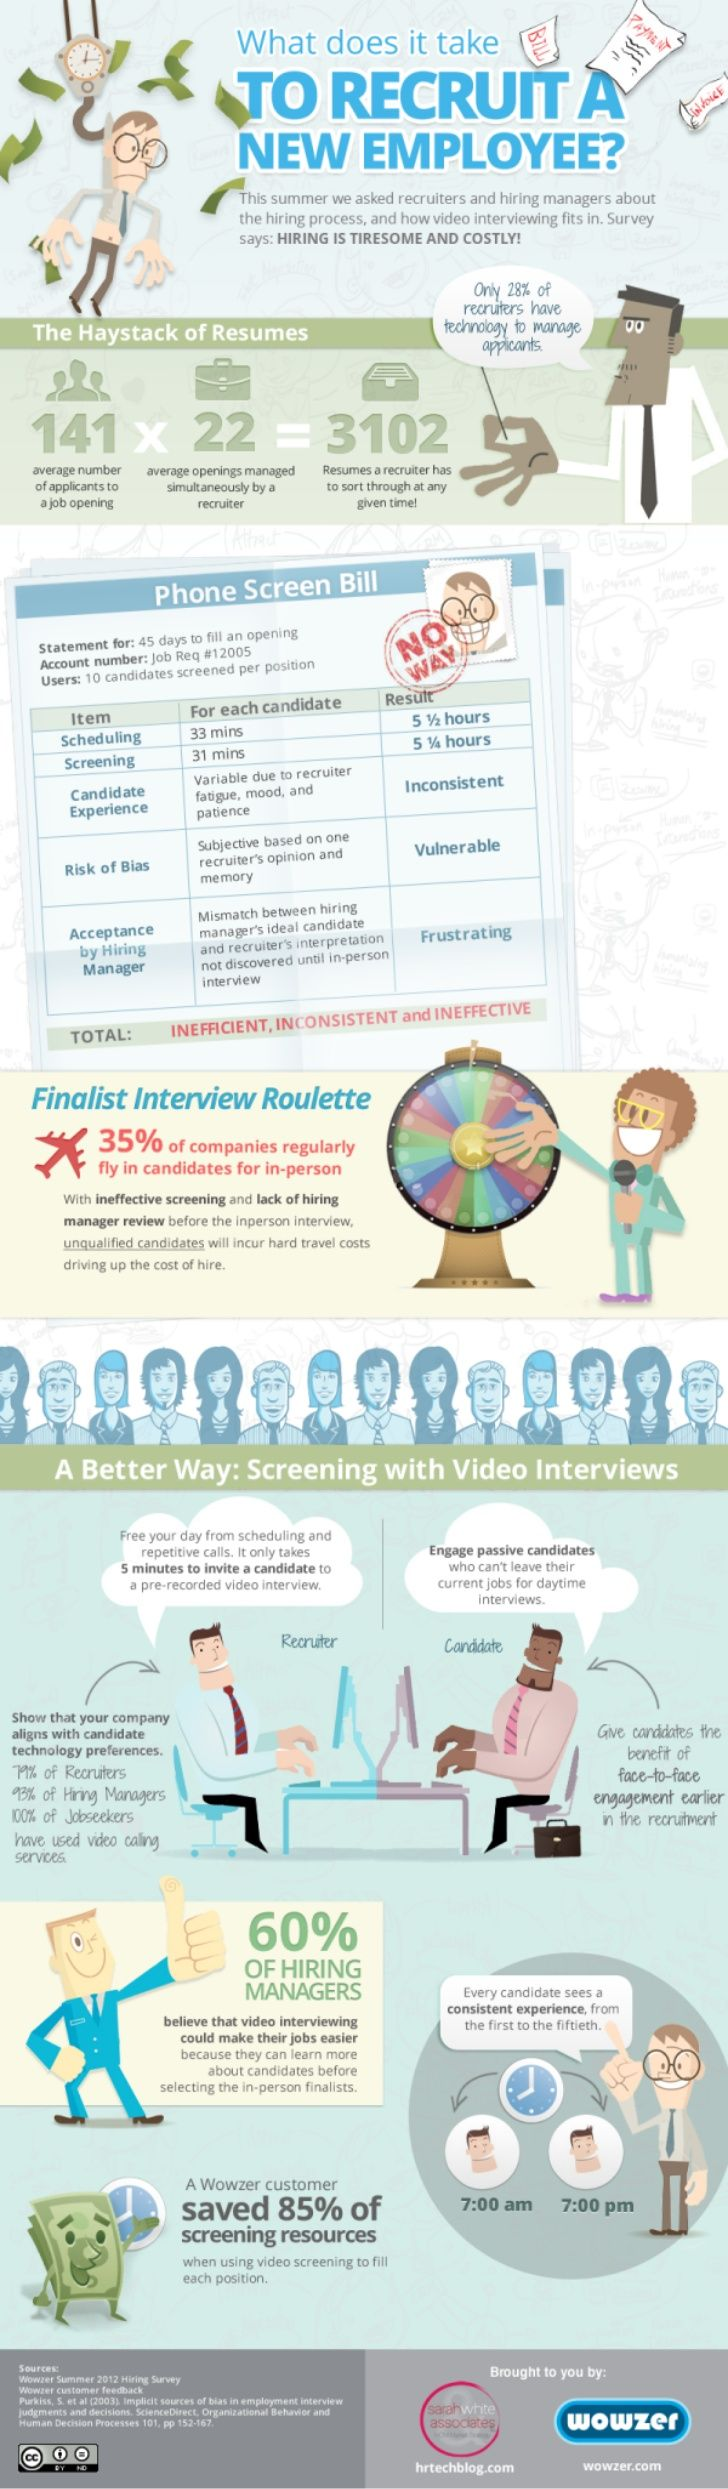 My latest infographic w/ @GoWowzer on the true cost of interviewing! via @imsosarah @hrtechblog #recruiting #hire #hrtechconf